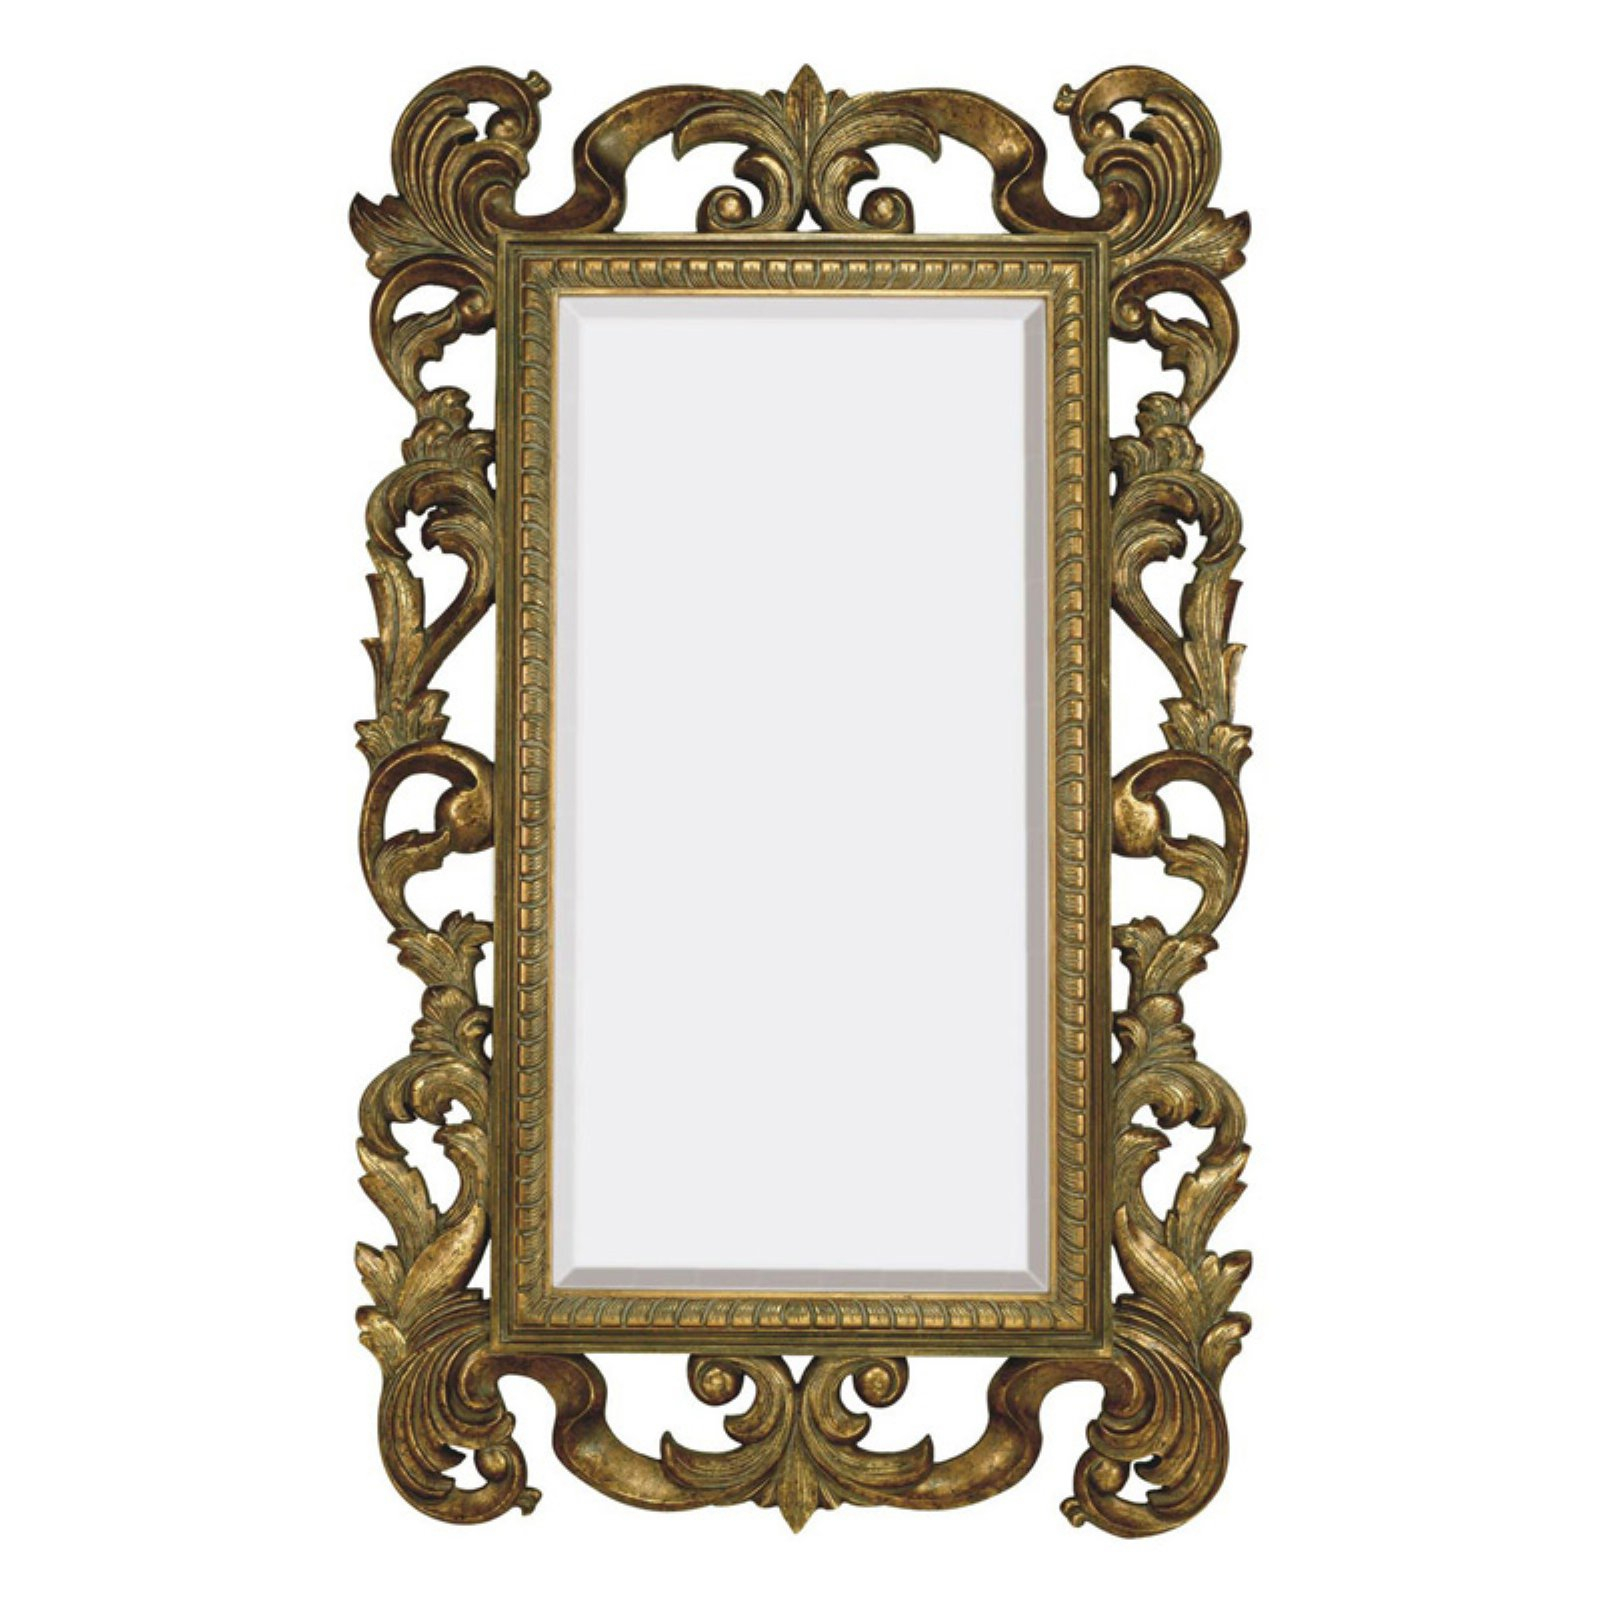 Majestic Wall Mirror – Antique Bronze | Products In 2019 Regarding Alie Traditional Beveled Distressed Accent Mirrors (Image 23 of 30)